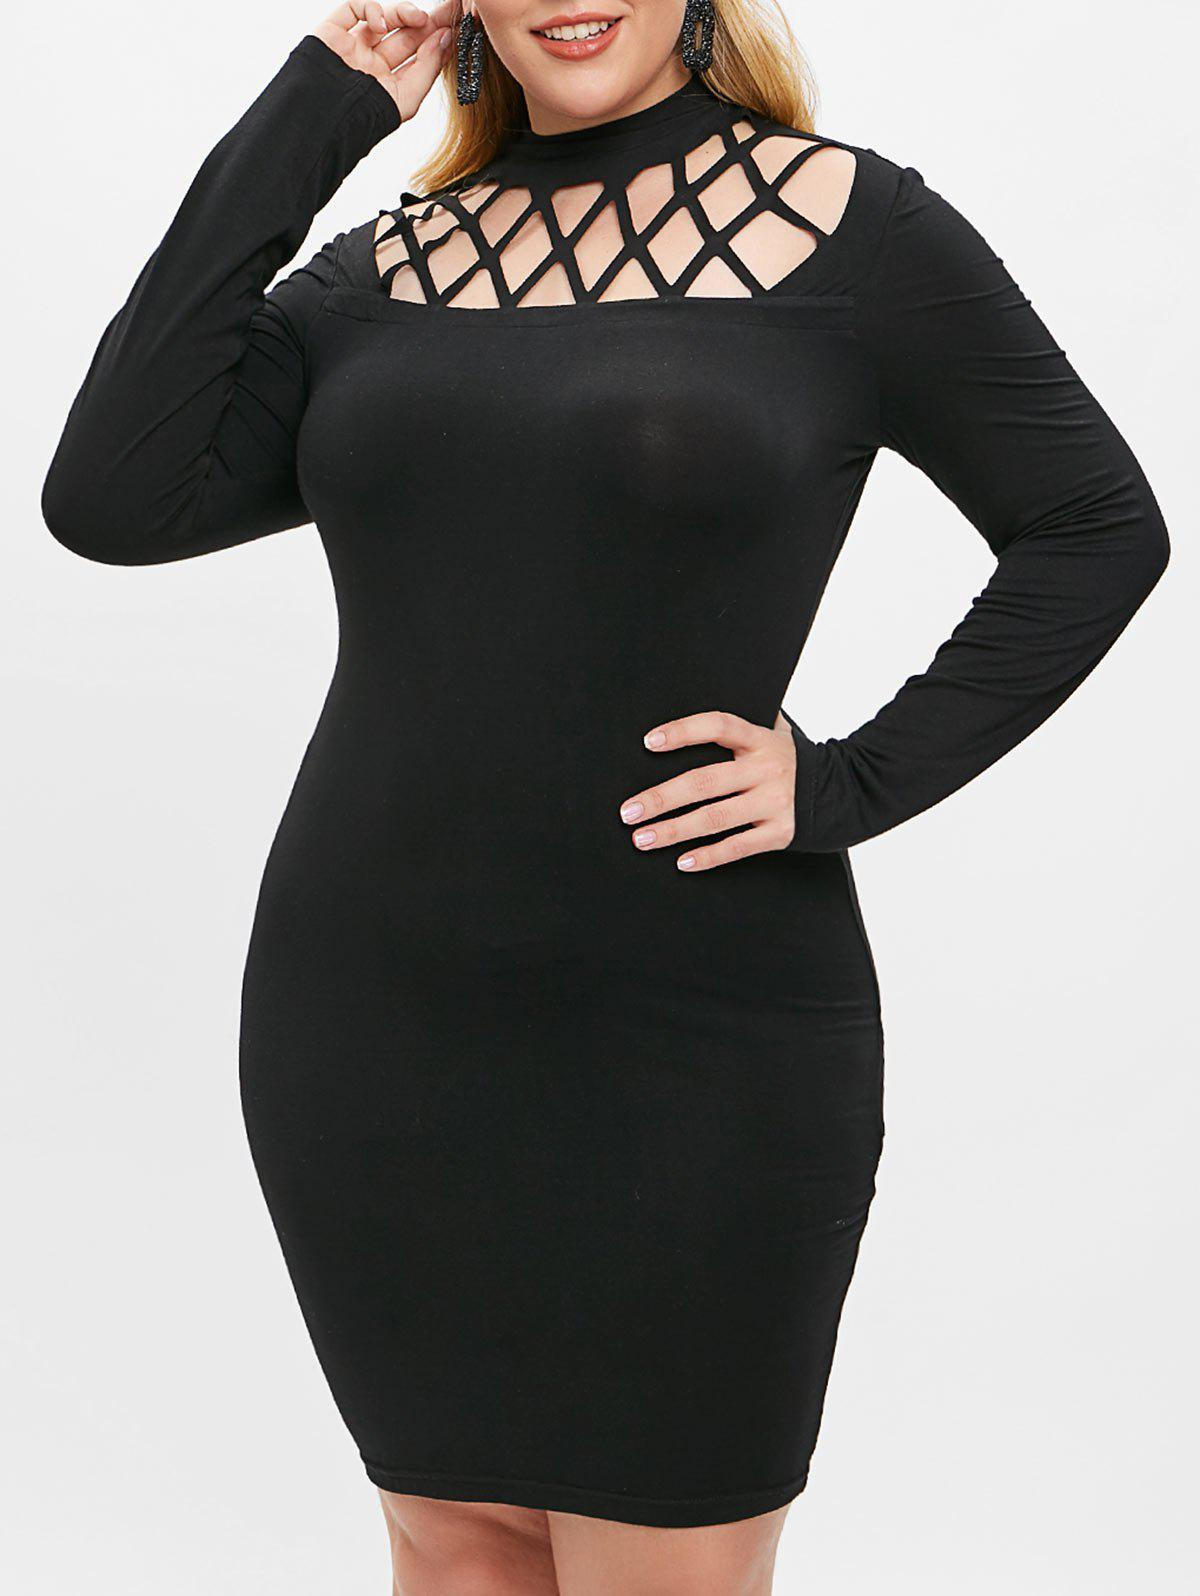 70% OFF] Plus Size Cut Out Bodycon Dress | Rosegal